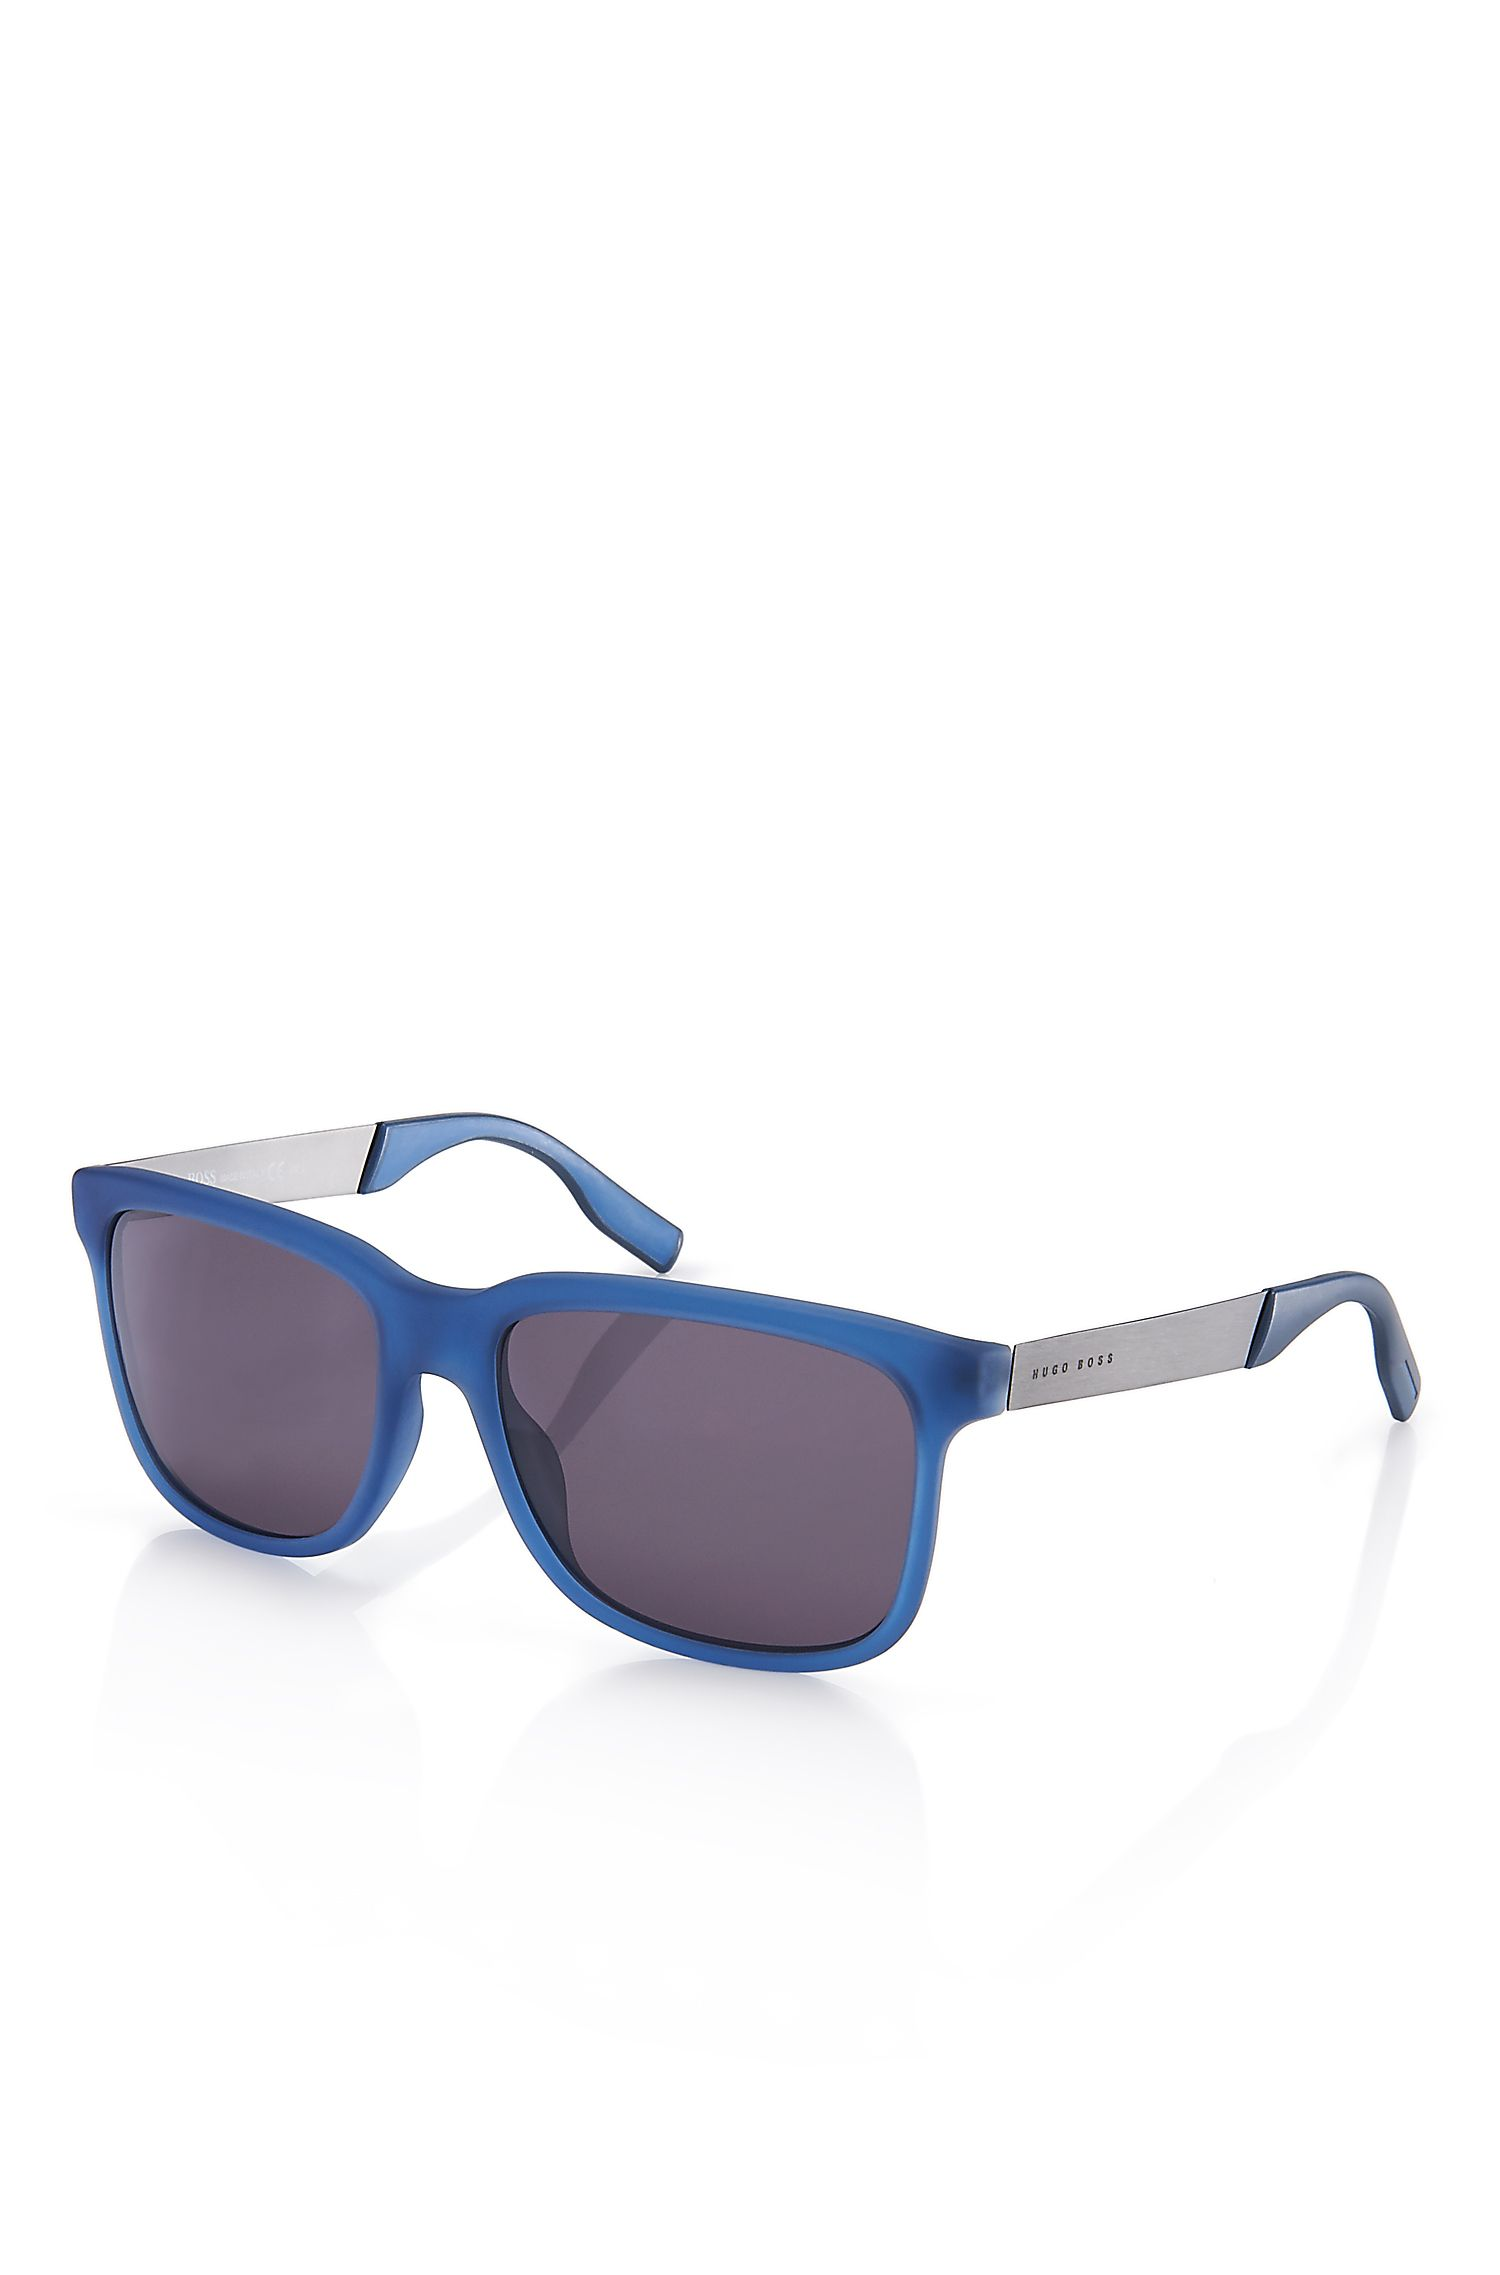 'Sunglasses' | Silver and Blue Polarized Sunglasses